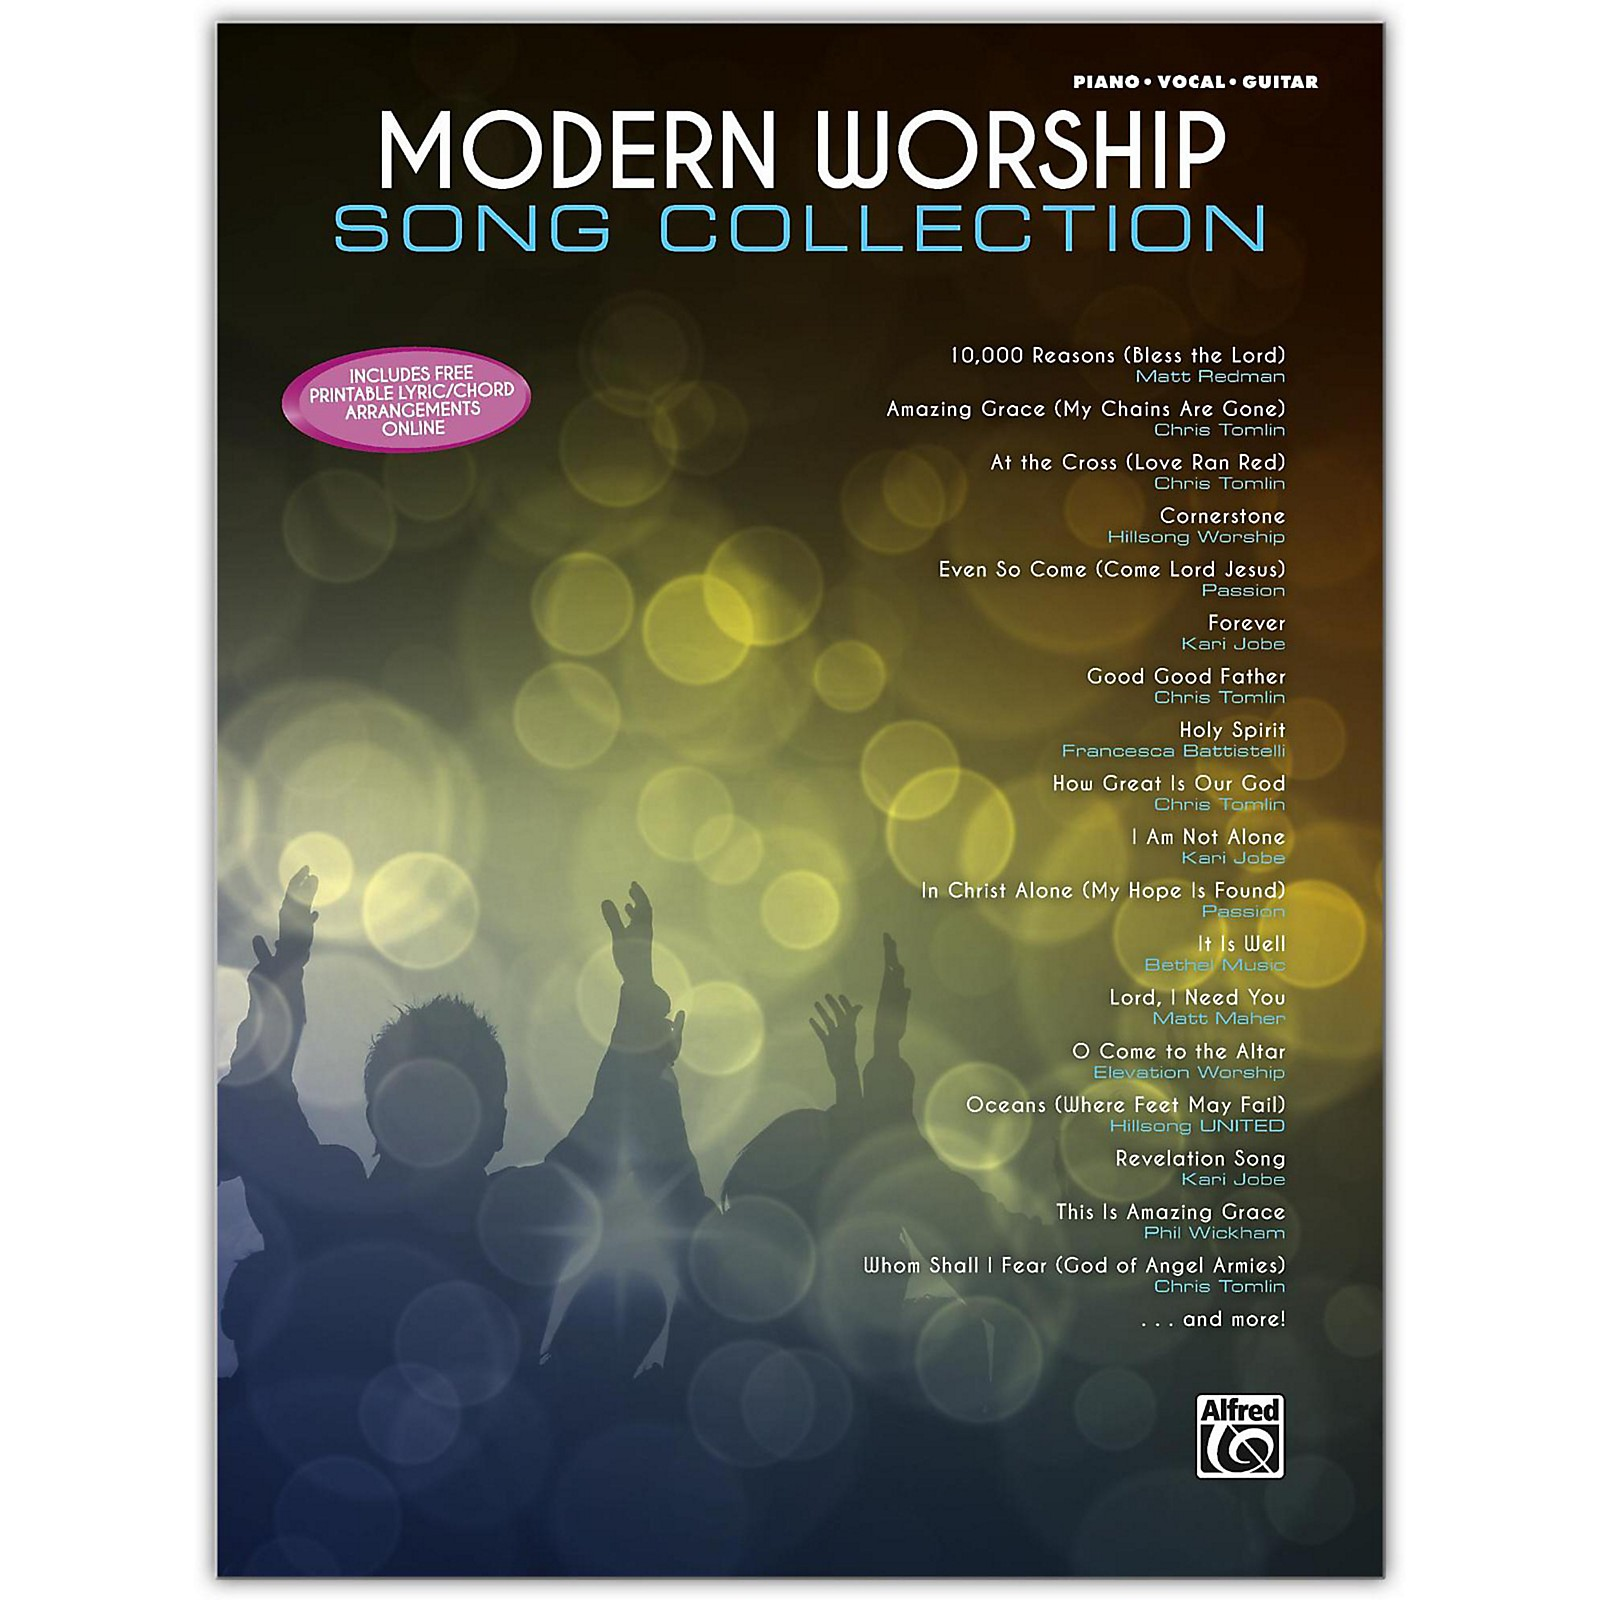 Alfred Modern Worship Song Collection Piano/Vocal/Guitar Songbook